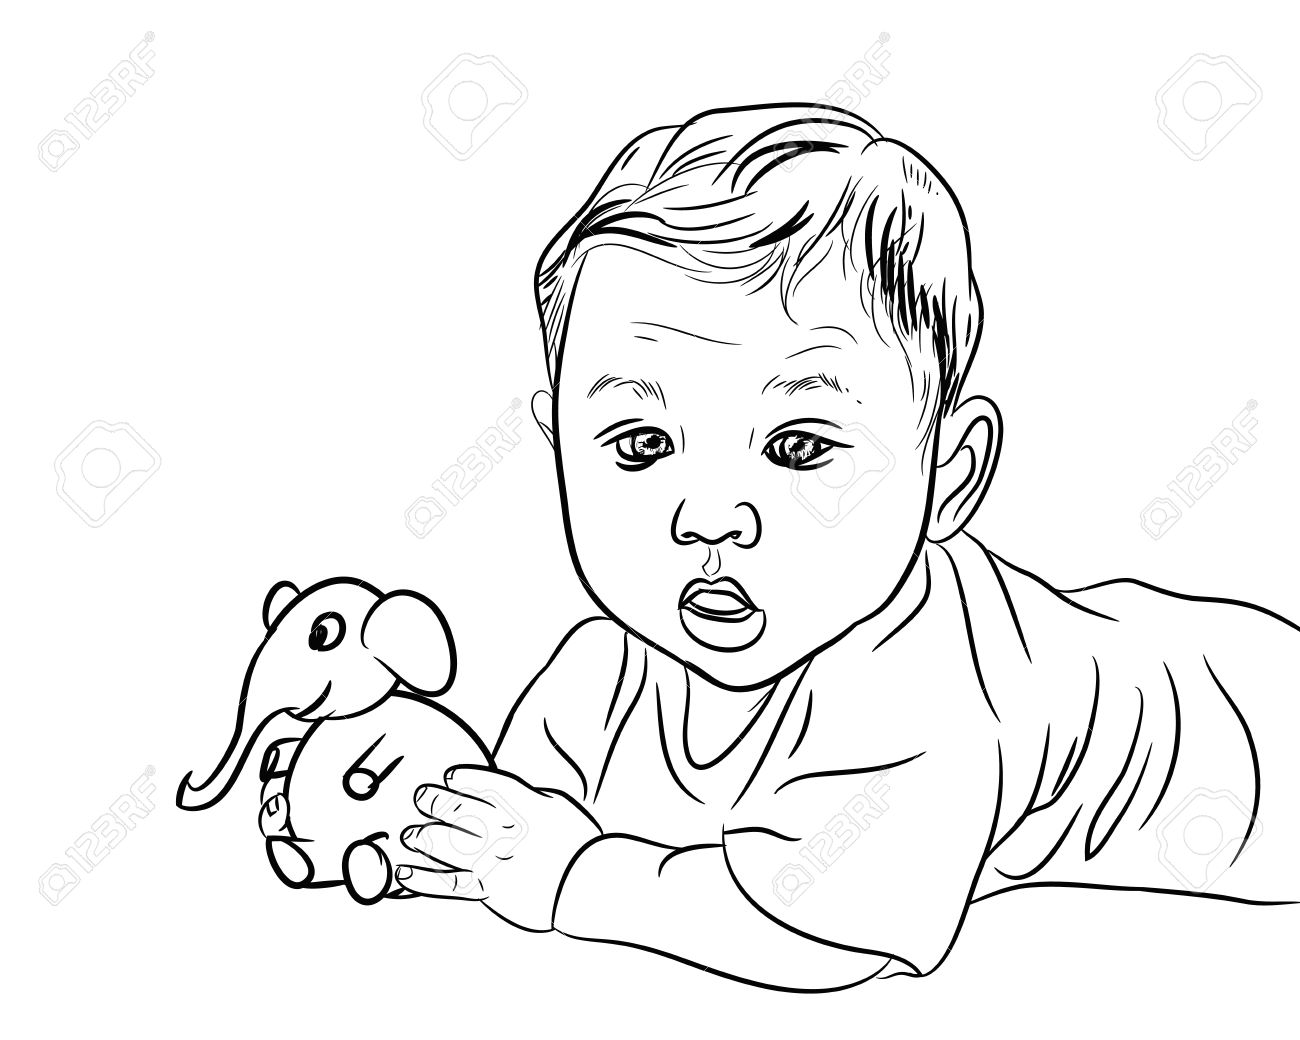 1300x1040 Drawing Of Male Baby Playing Elephant Toy On White Royalty Free